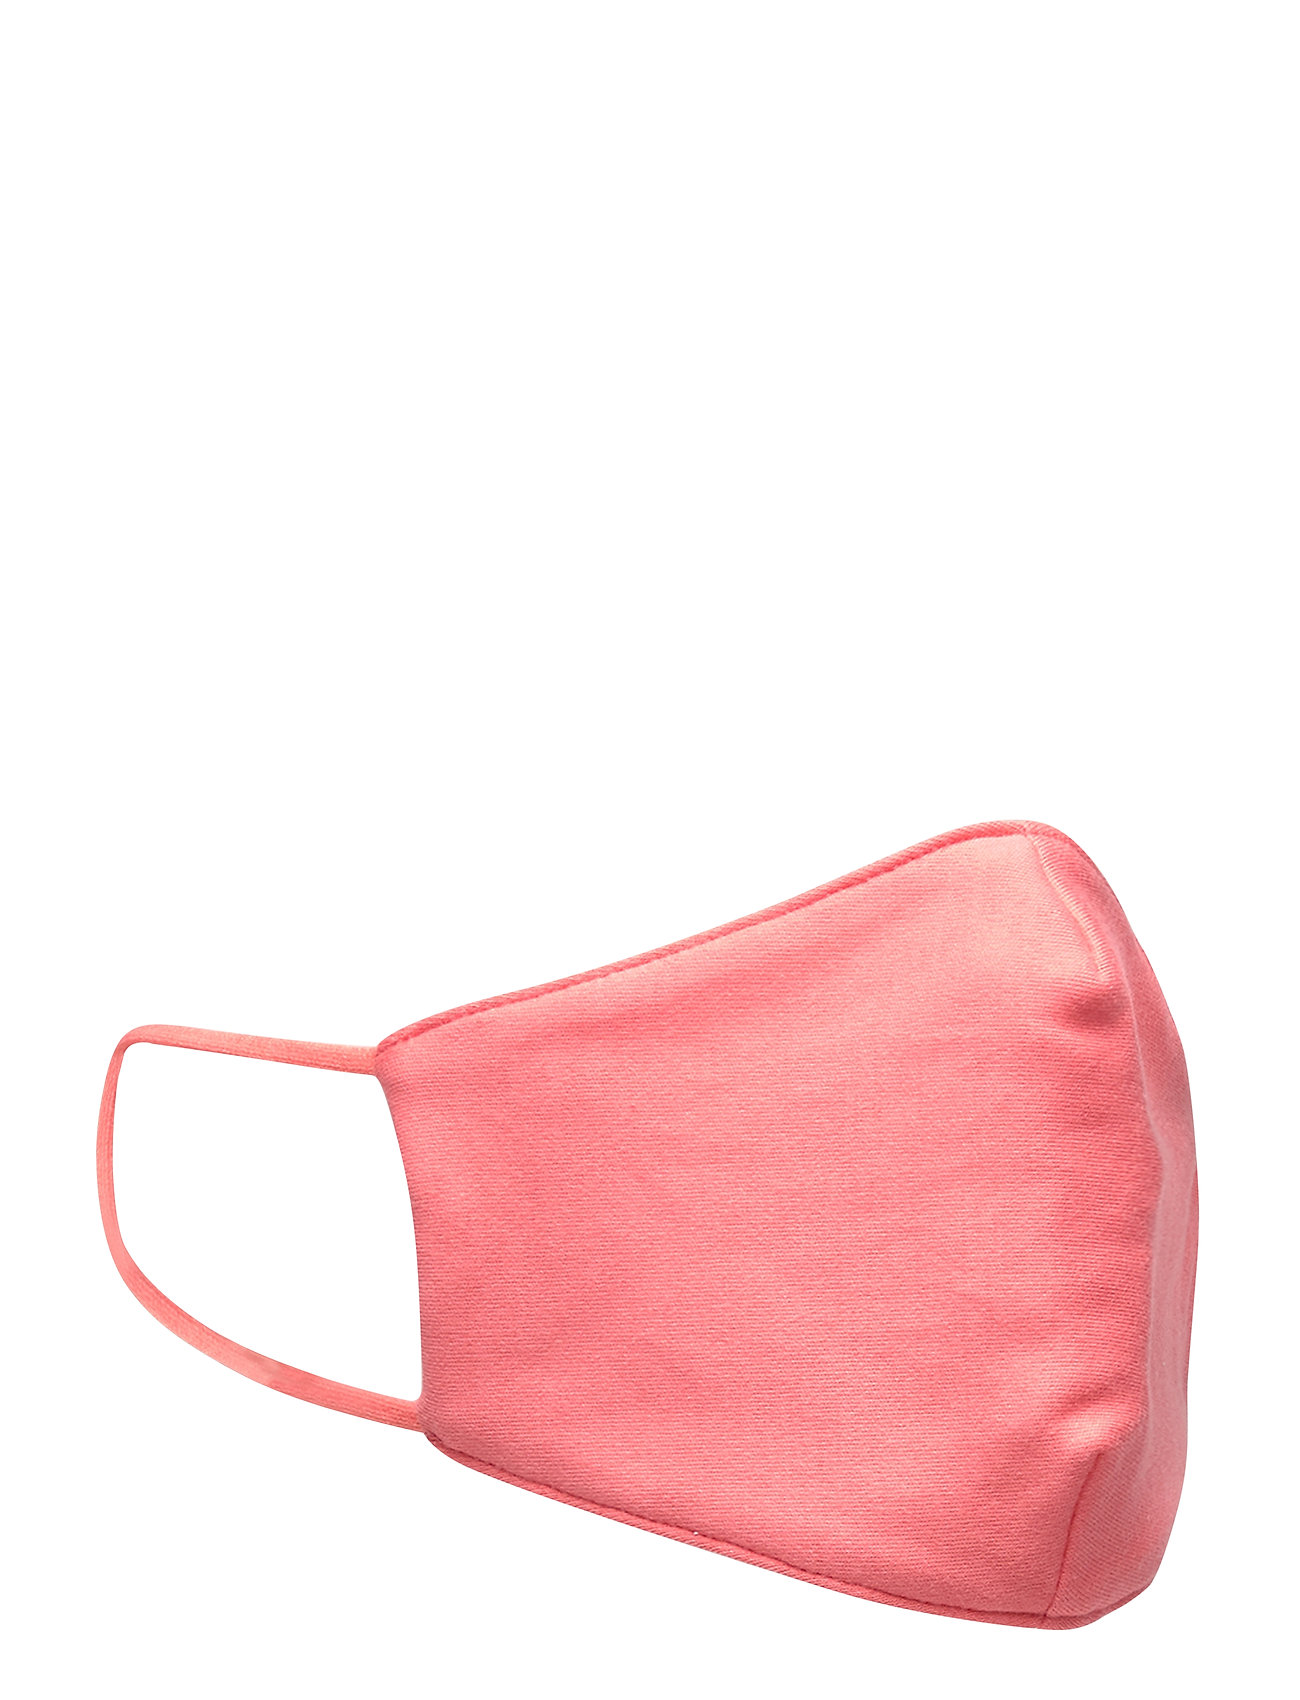 Image of Face Mask Accessories Face Masks Lyserød Tom Tailor (3430127343)